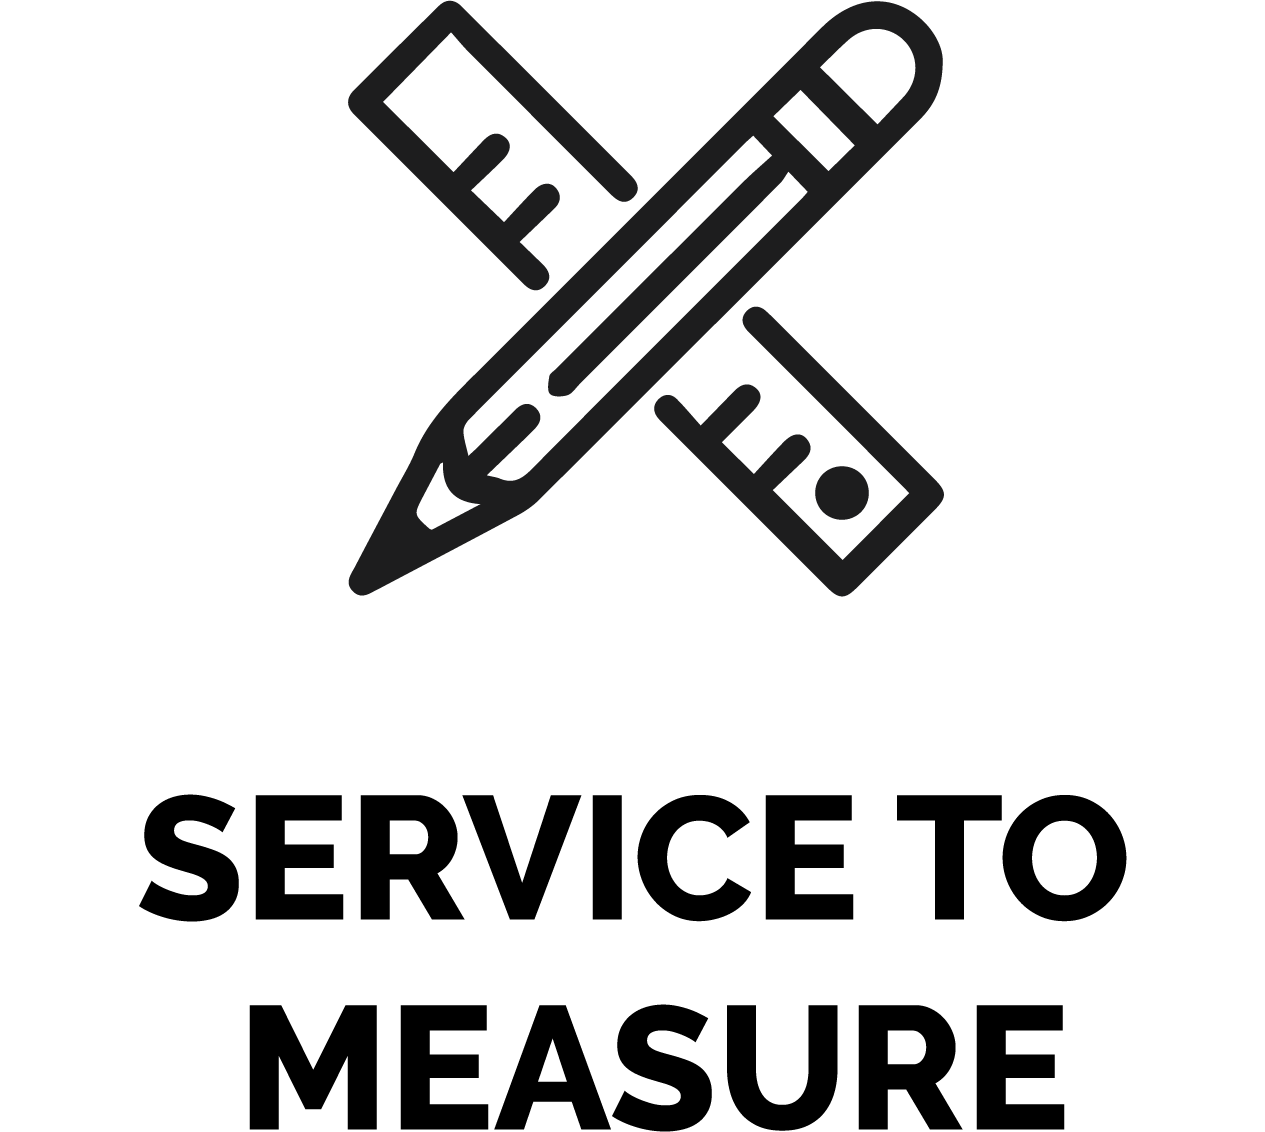 service to measure